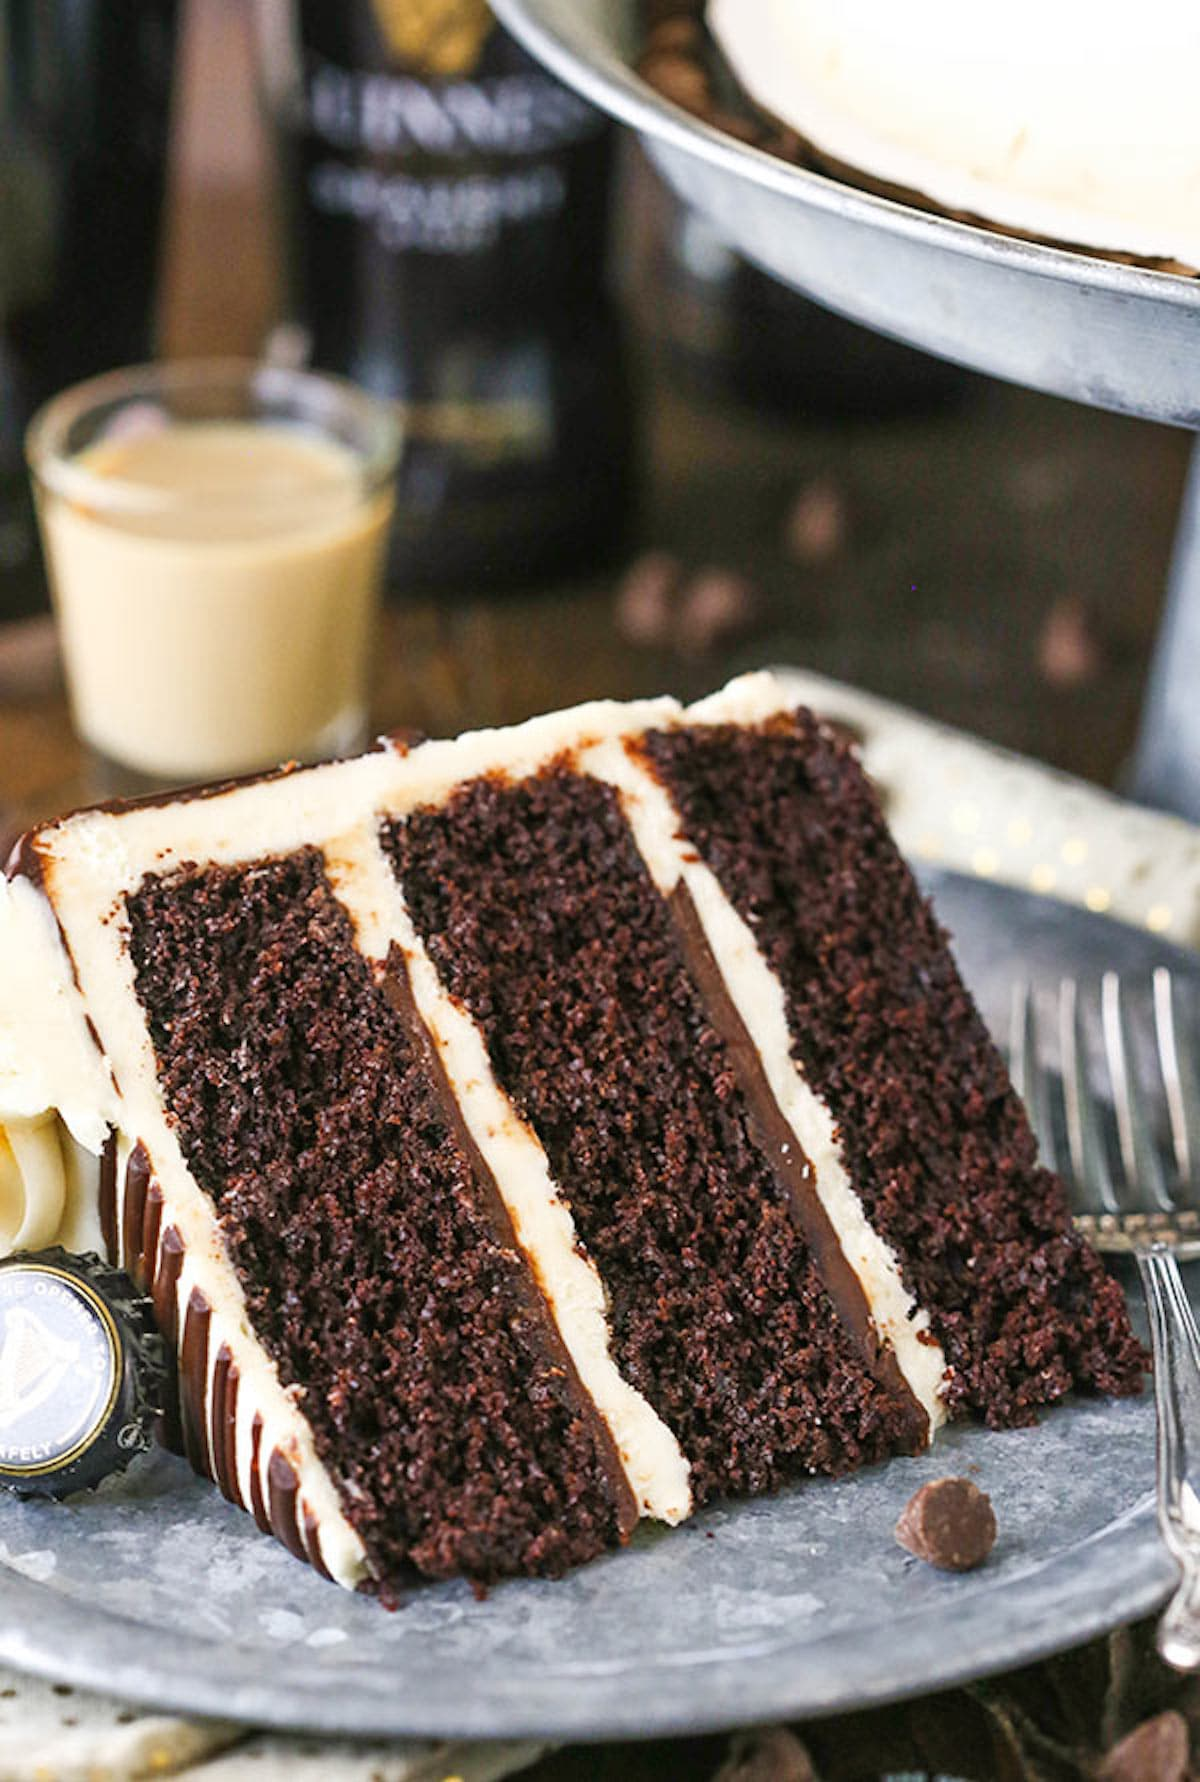 A Slice of Guinness Layer Cake with Baileys Frosting on a Plate